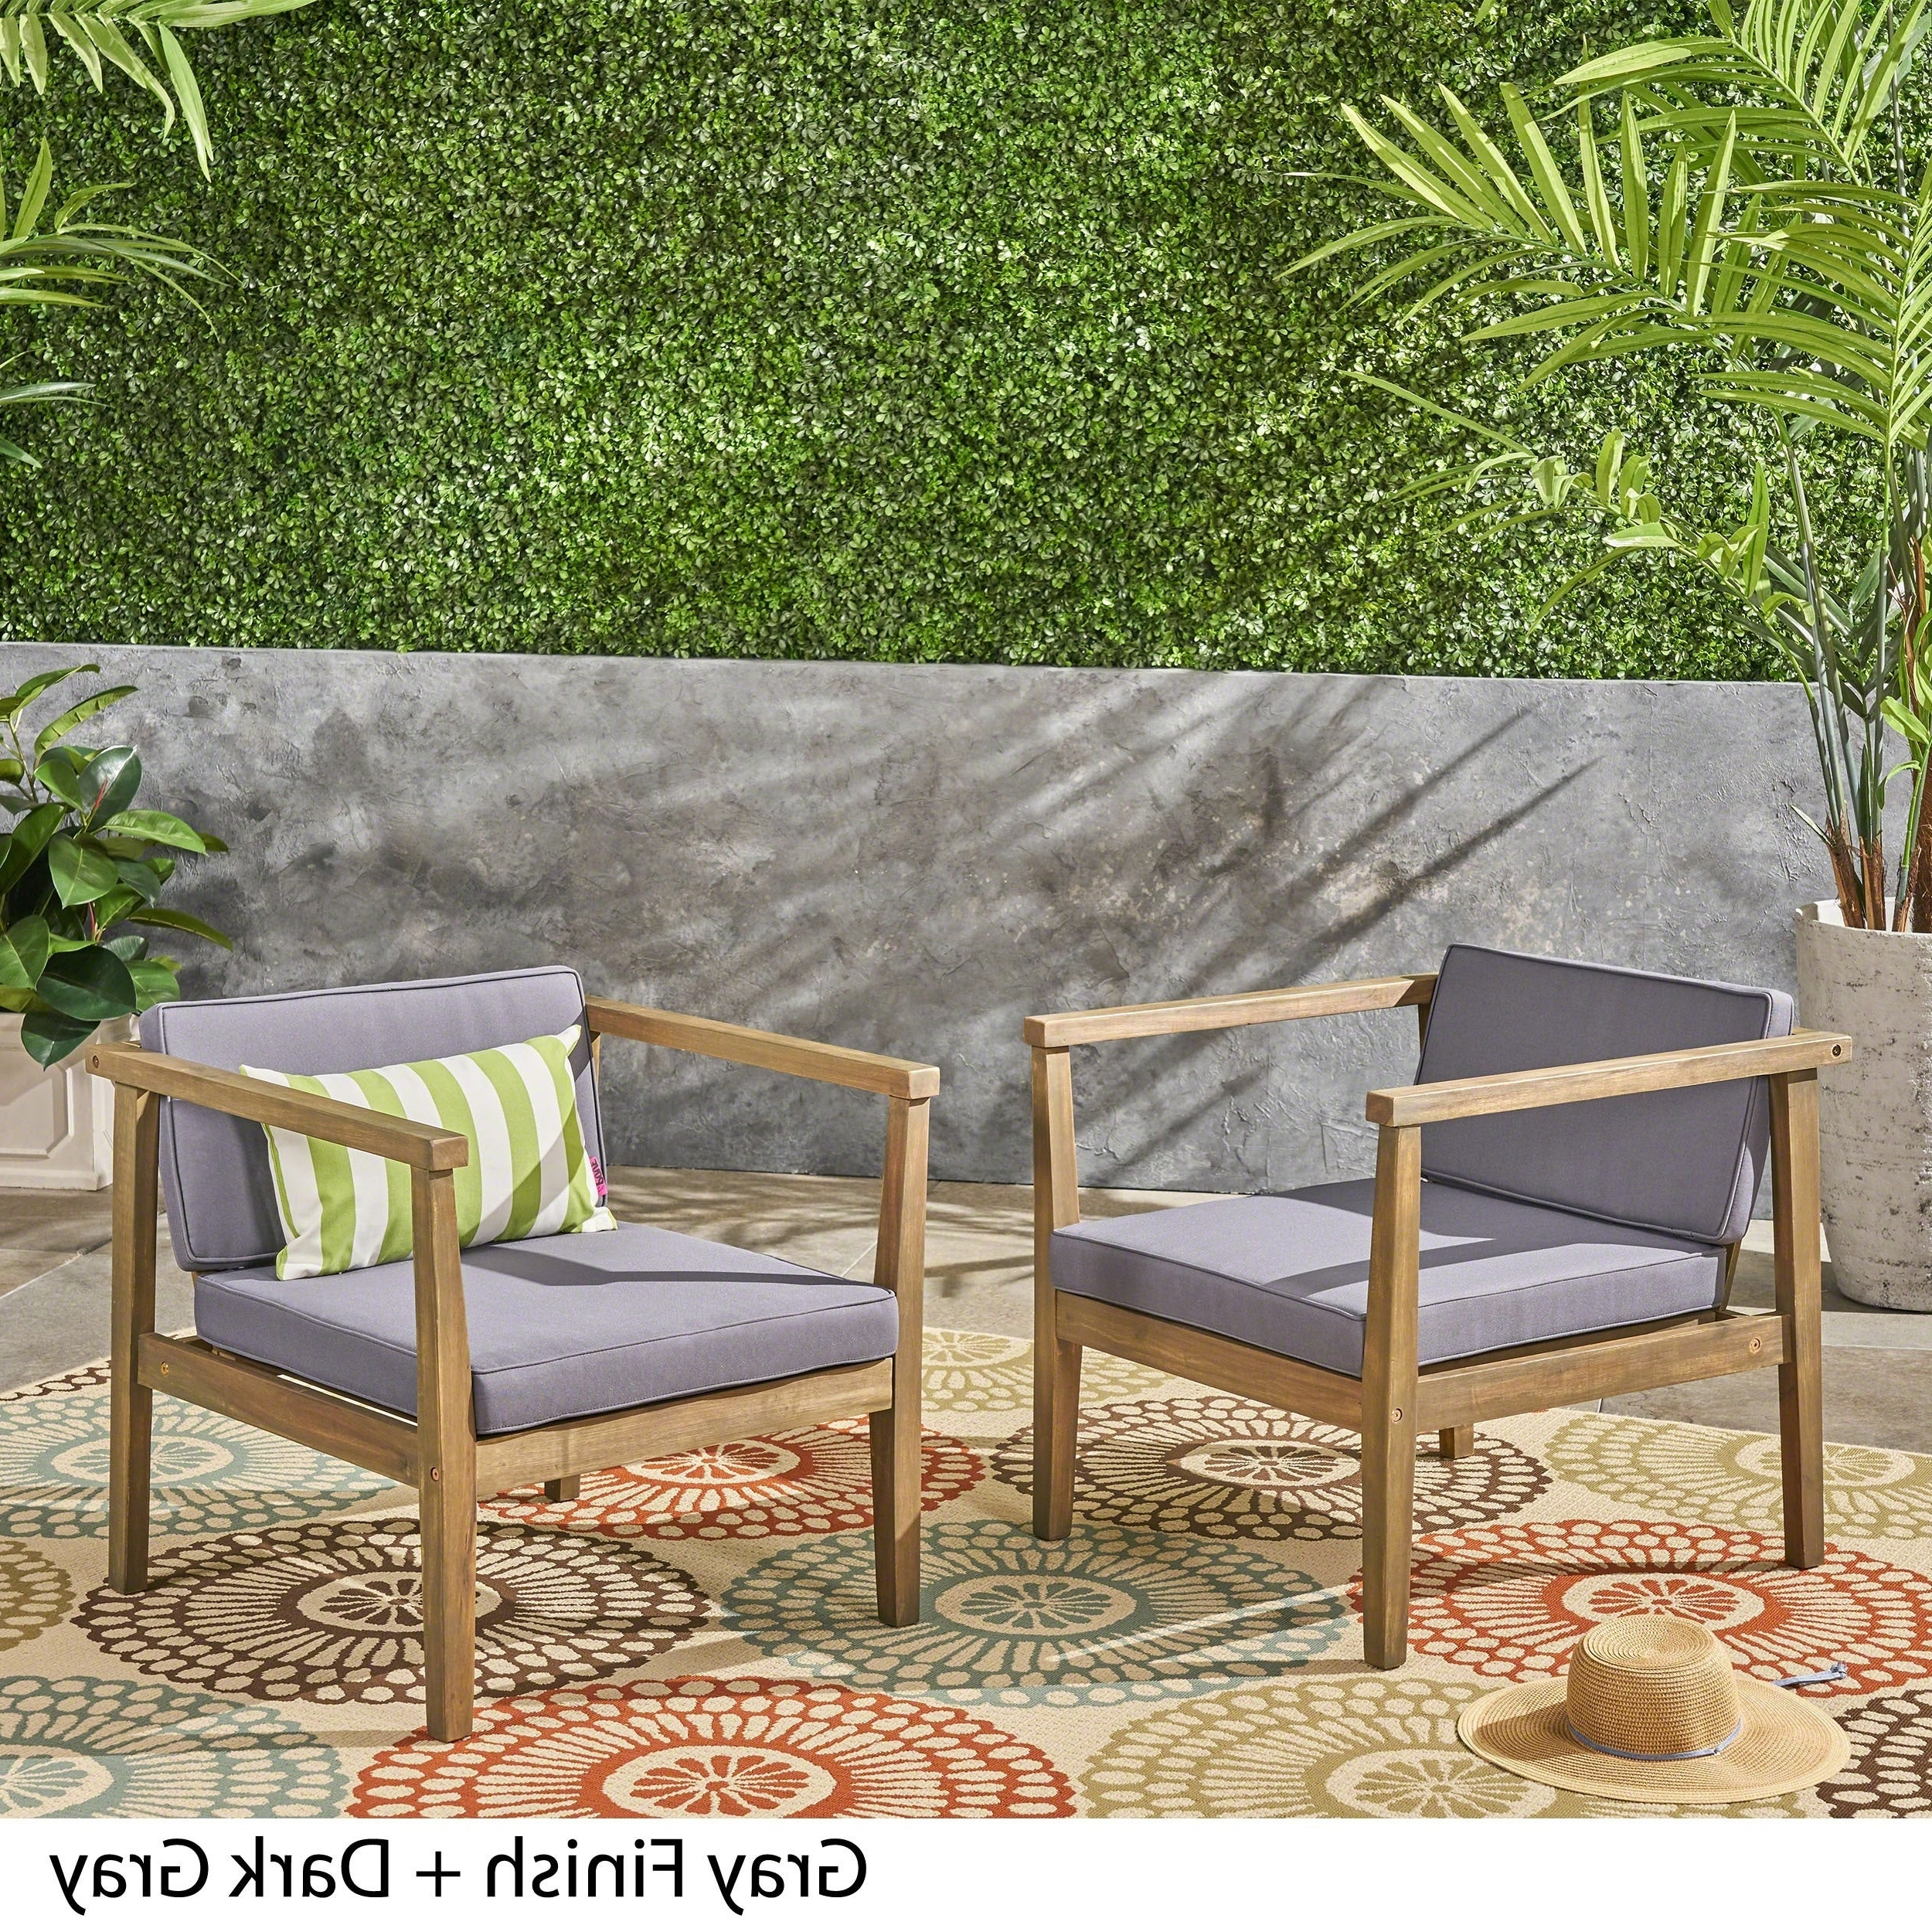 Newbury Patio Sofas With Cushions Throughout Popular Newbury Outdoor Acacia Wood Club Chairs With Cushions (Set Of 2) Christopher Knight Home (View 18 of 20)